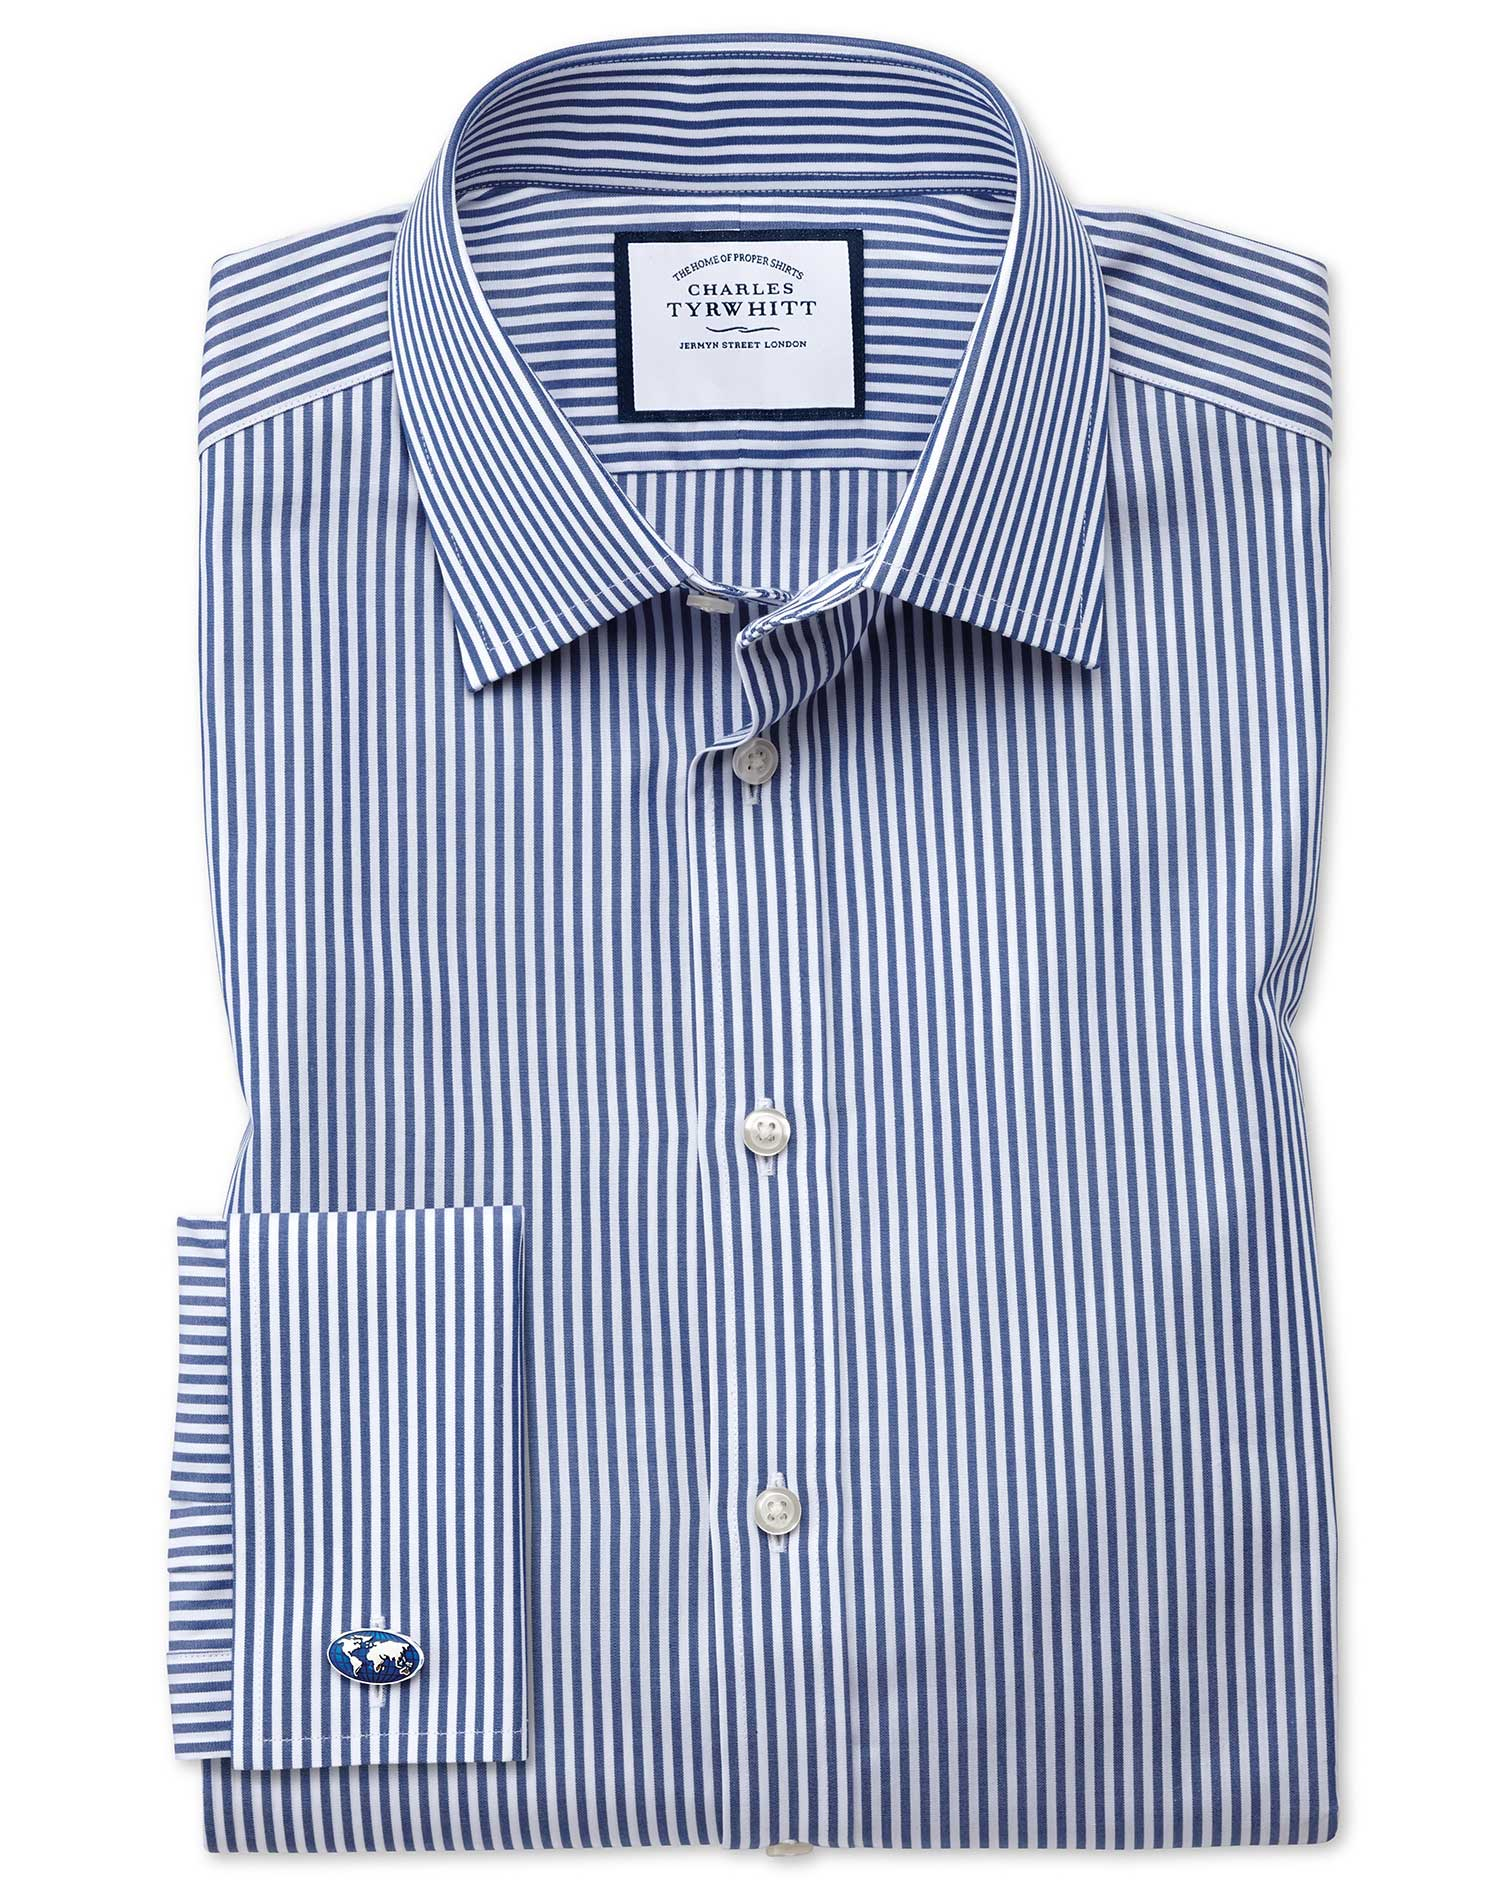 Classic Fit Bengal Stripe Navy Blue Cotton Formal Shirt Single Cuff Size 17/36 by Charles Tyrwhitt